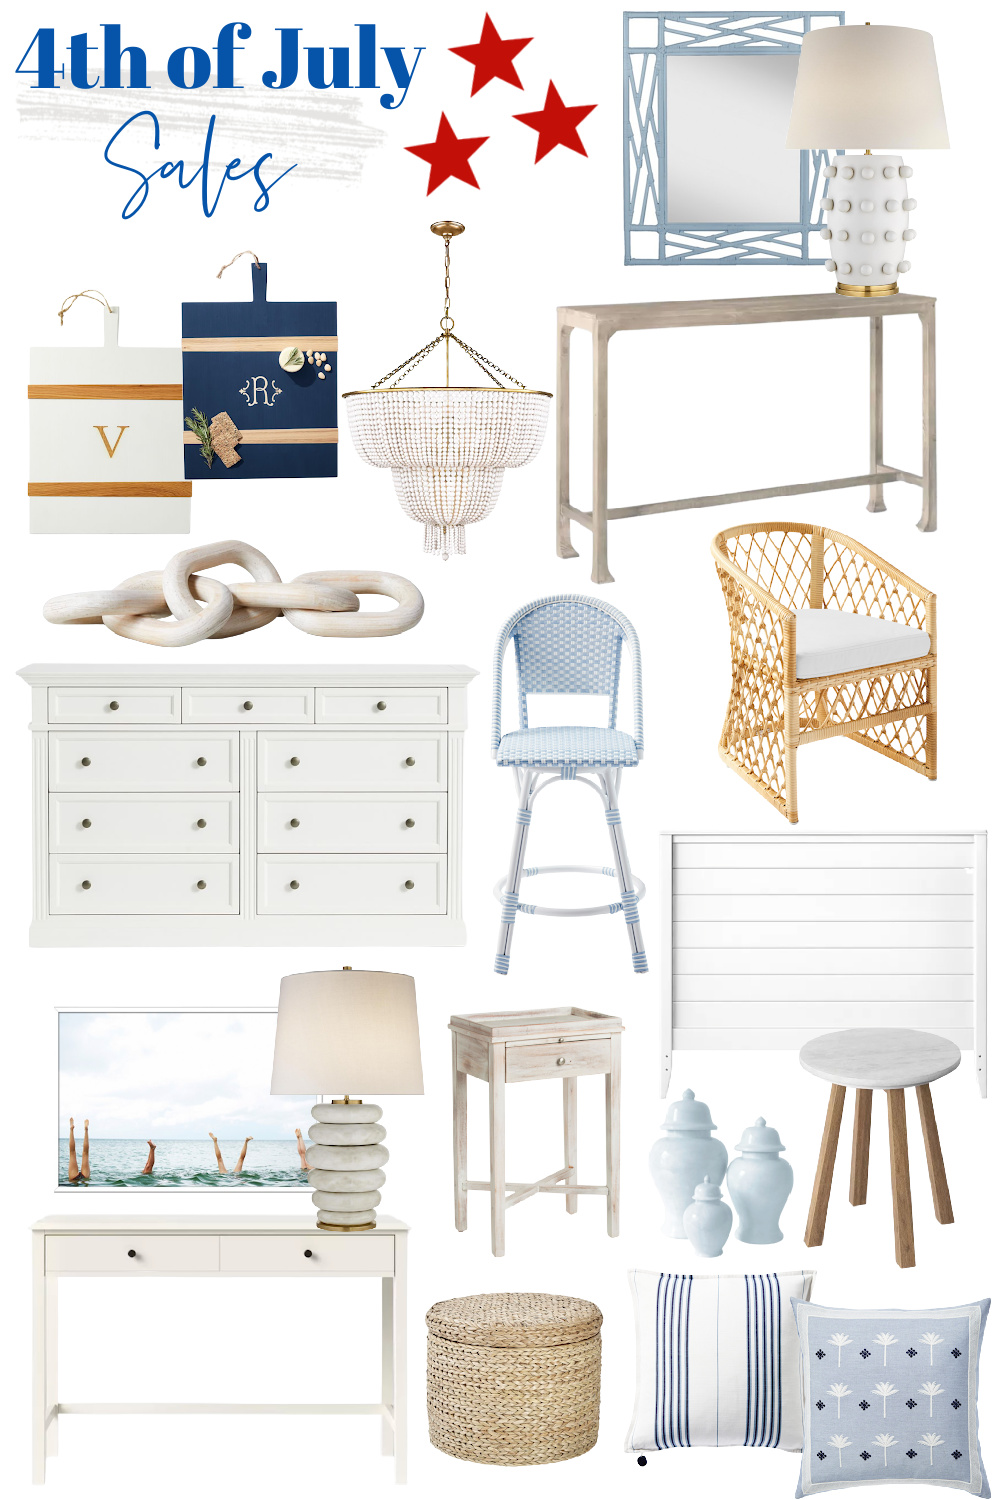 4th of July Sales - Home Decor Sales - 4th of July Home Decor Sales - Serena and Lily Sale - Target Sale - Pottery Barn Sale